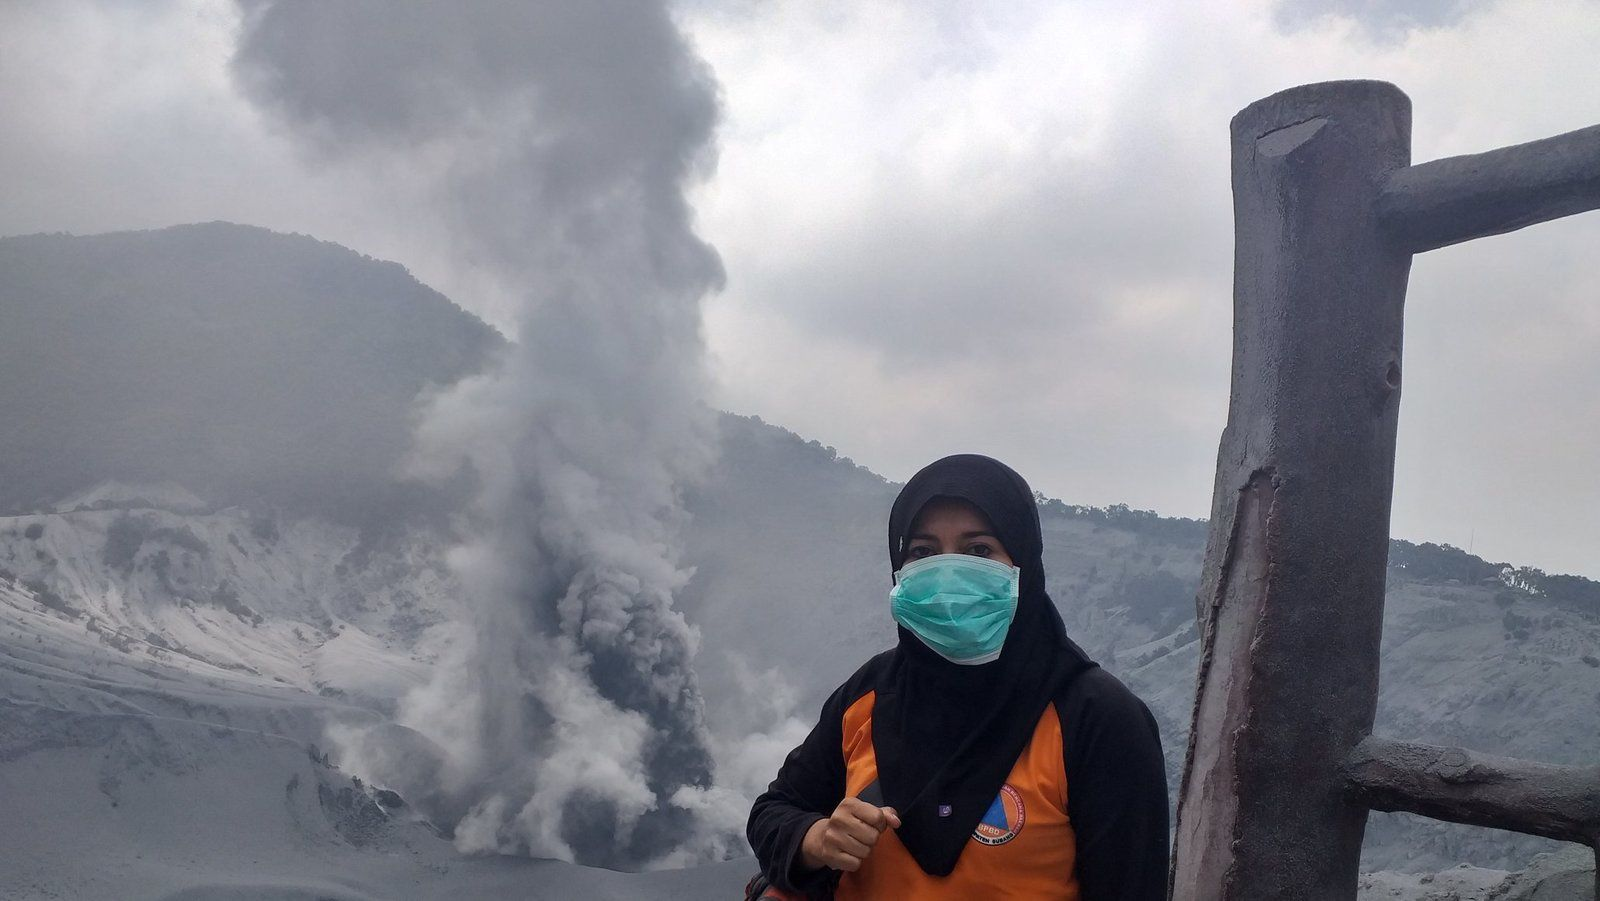 Tangkuban Parahu - 17.08.2019 - ash and gas plume - photo BPBD / Nyi Mas Sagara Manik